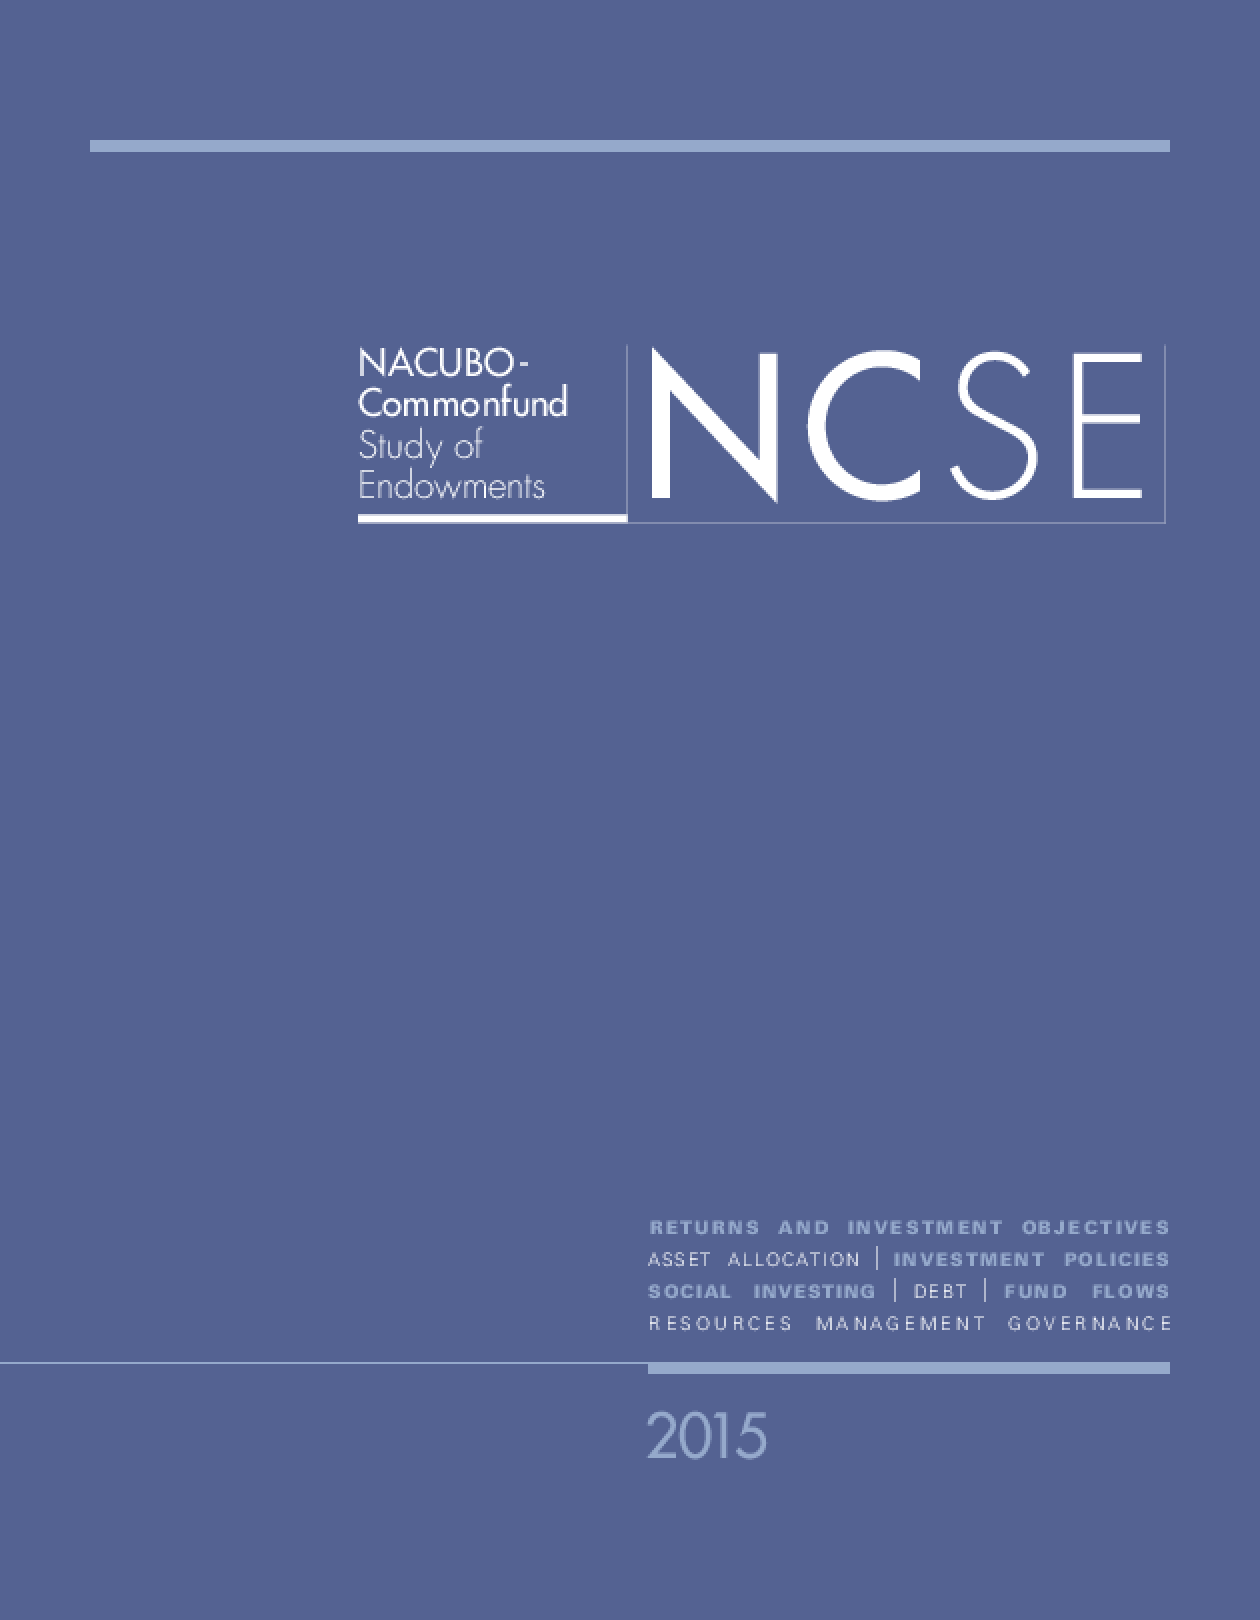 2015 NACUBO-Commonfund Study of Endowments